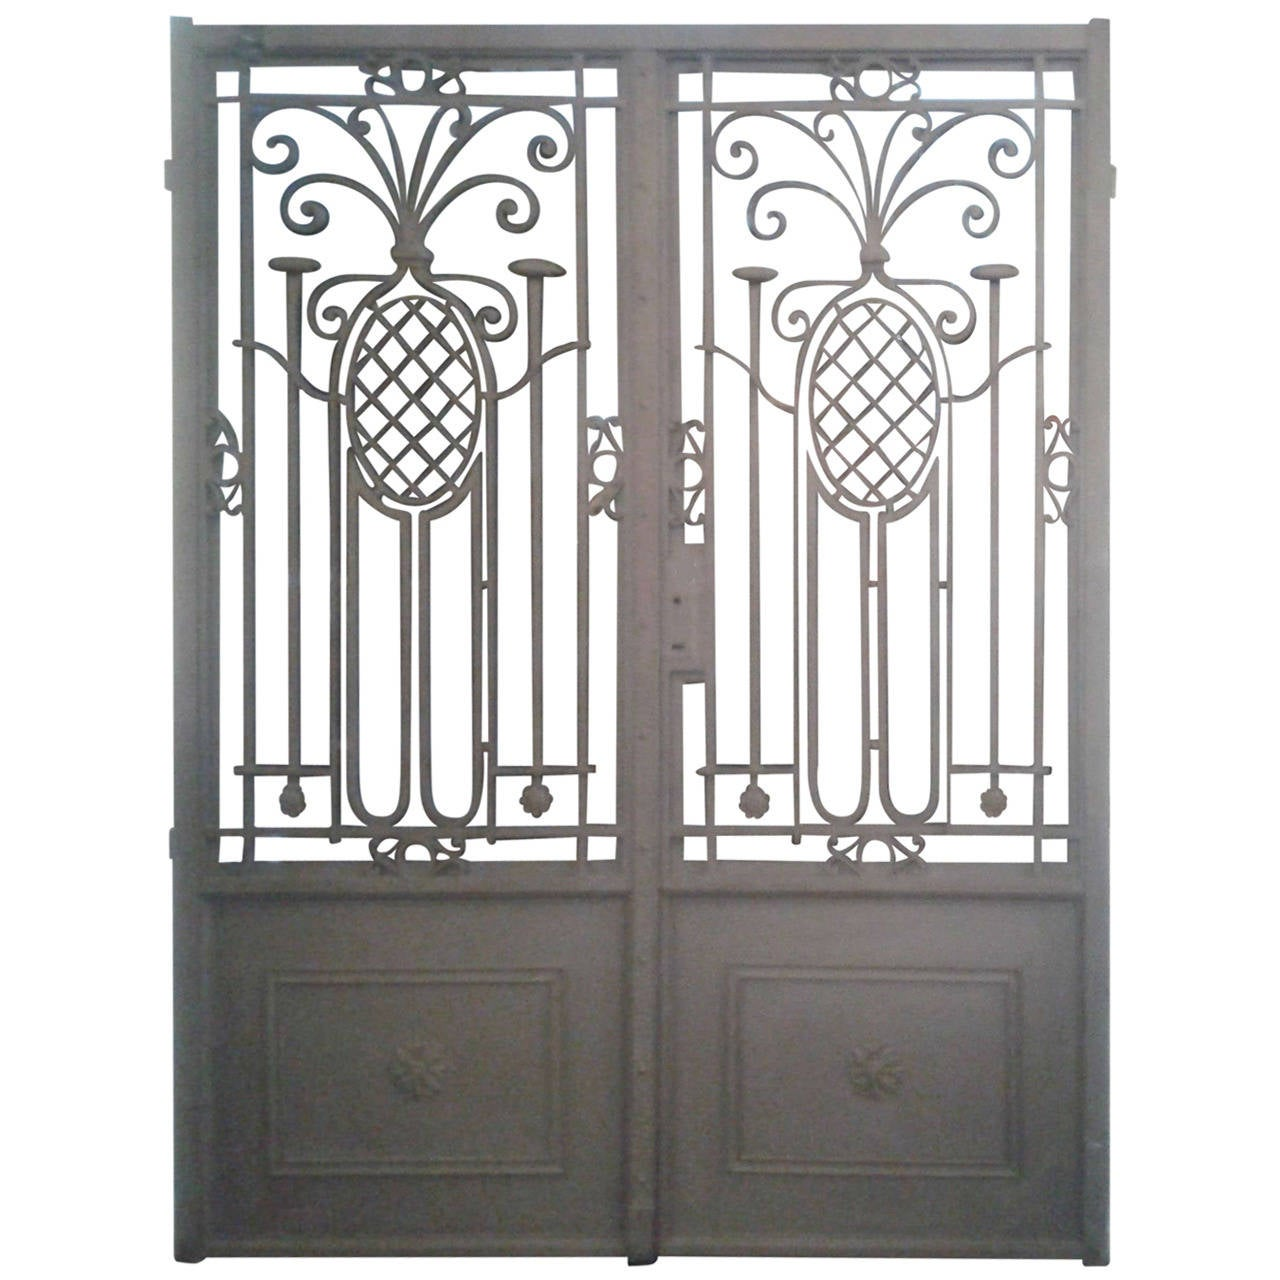 Contemporary Iron Gate Design For Home Images - Home Decorating ...